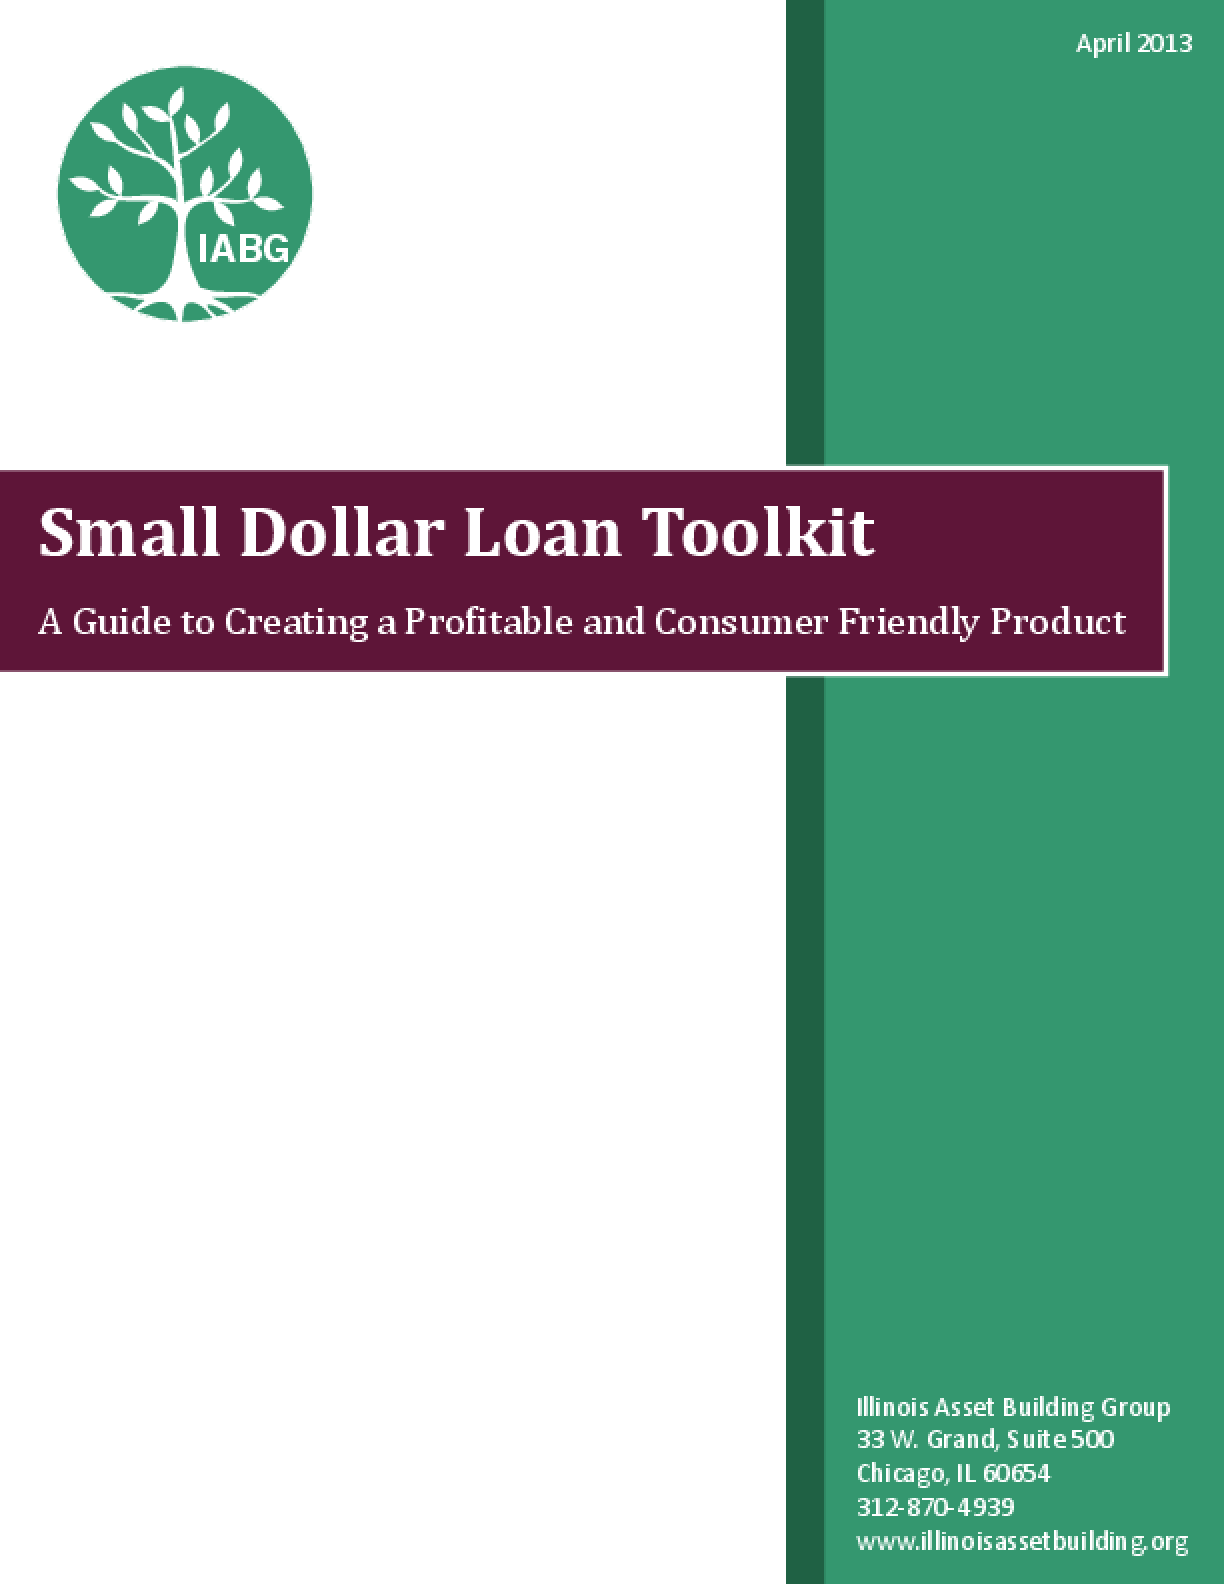 Small Dollar Loan Toolkit: A Guide to Creating a Profitable and Consumer Friendly Product